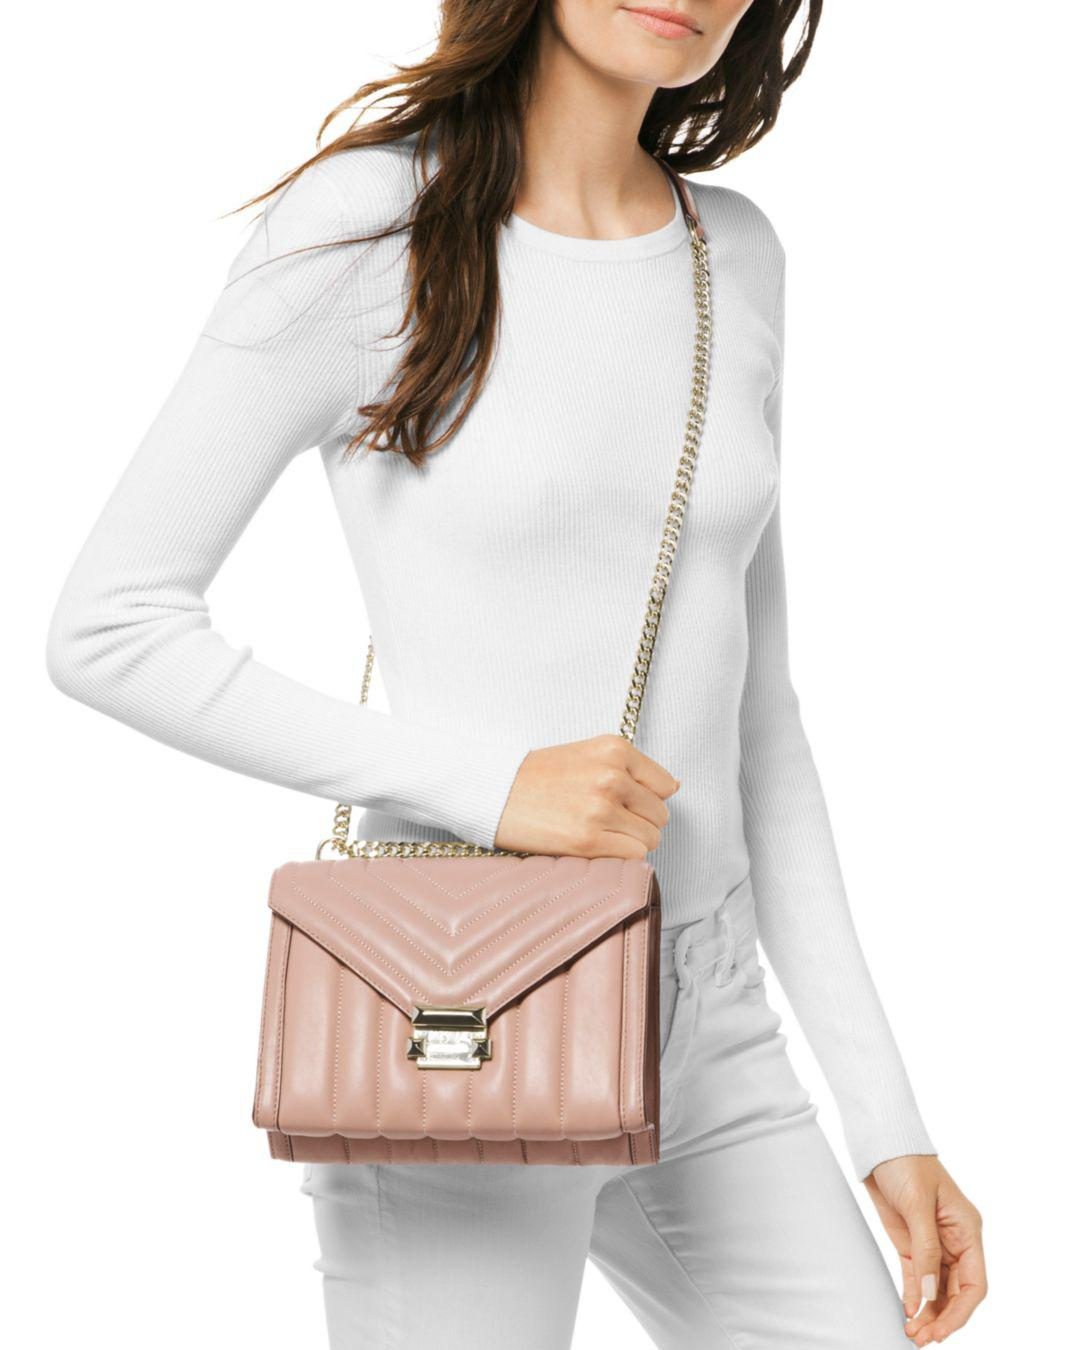 2939fdf4c933 Michael Kors Whitney Large Quilted Leather Convertible Shoulder Bag - Save  50% - Lyst